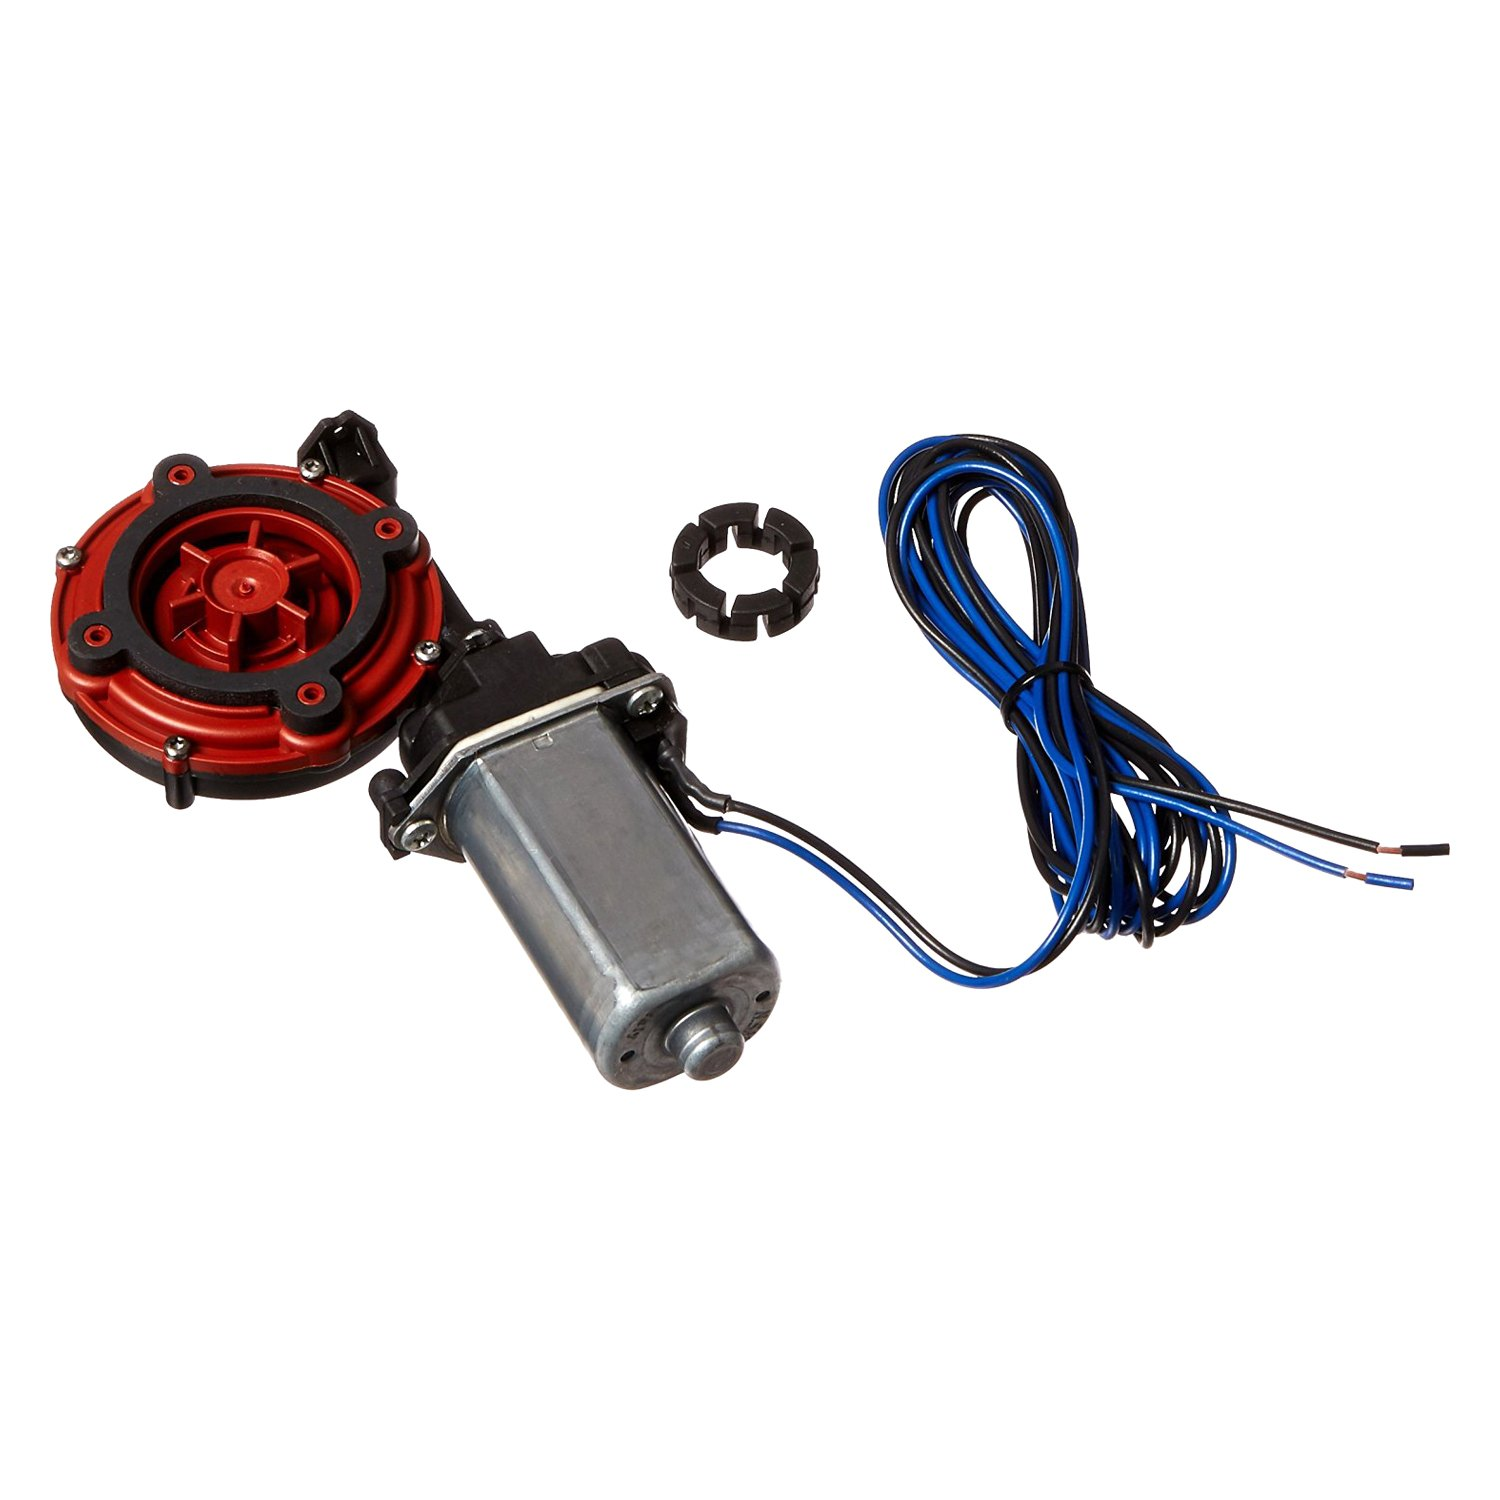 Spal automotive 33010137 power window motor for Power window motor replacement cost